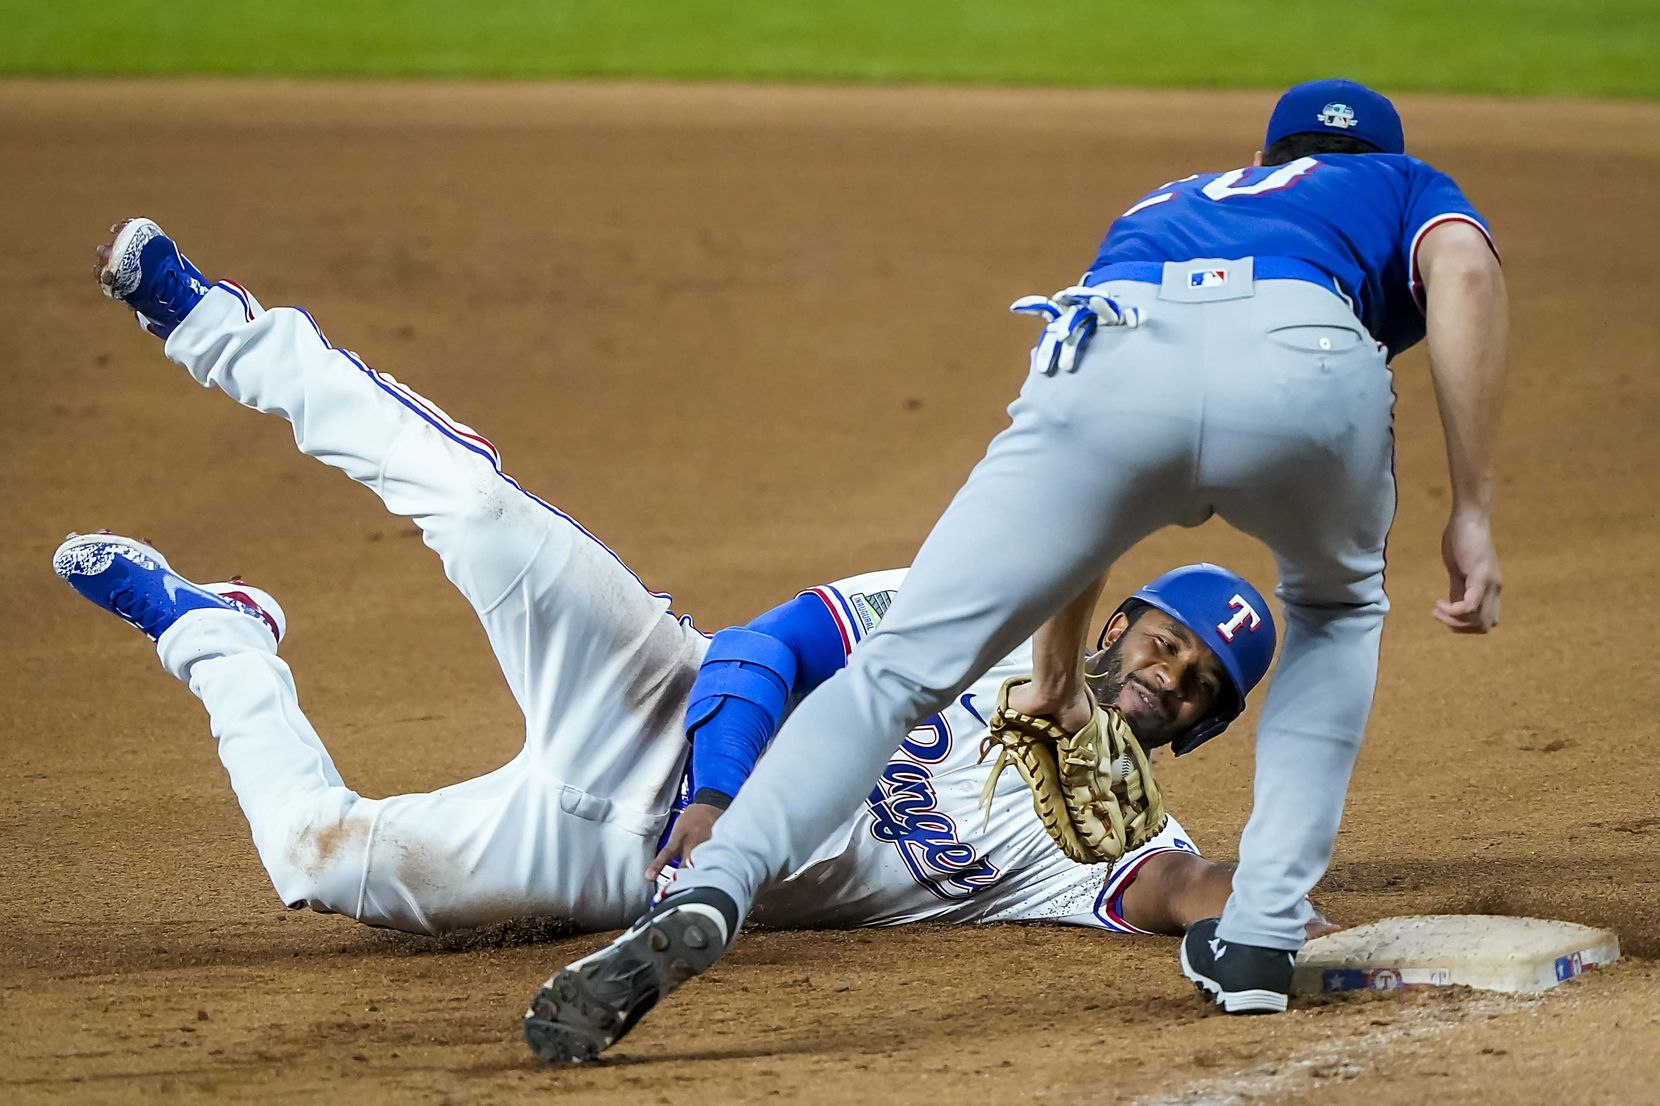 Shortstop Elvis Andrus is picked off first base as first baseman infielder Greg Bird applies the tag during Texas Rangers Summer Camp at Globe Life Field on Thursday, July 16, 2020.